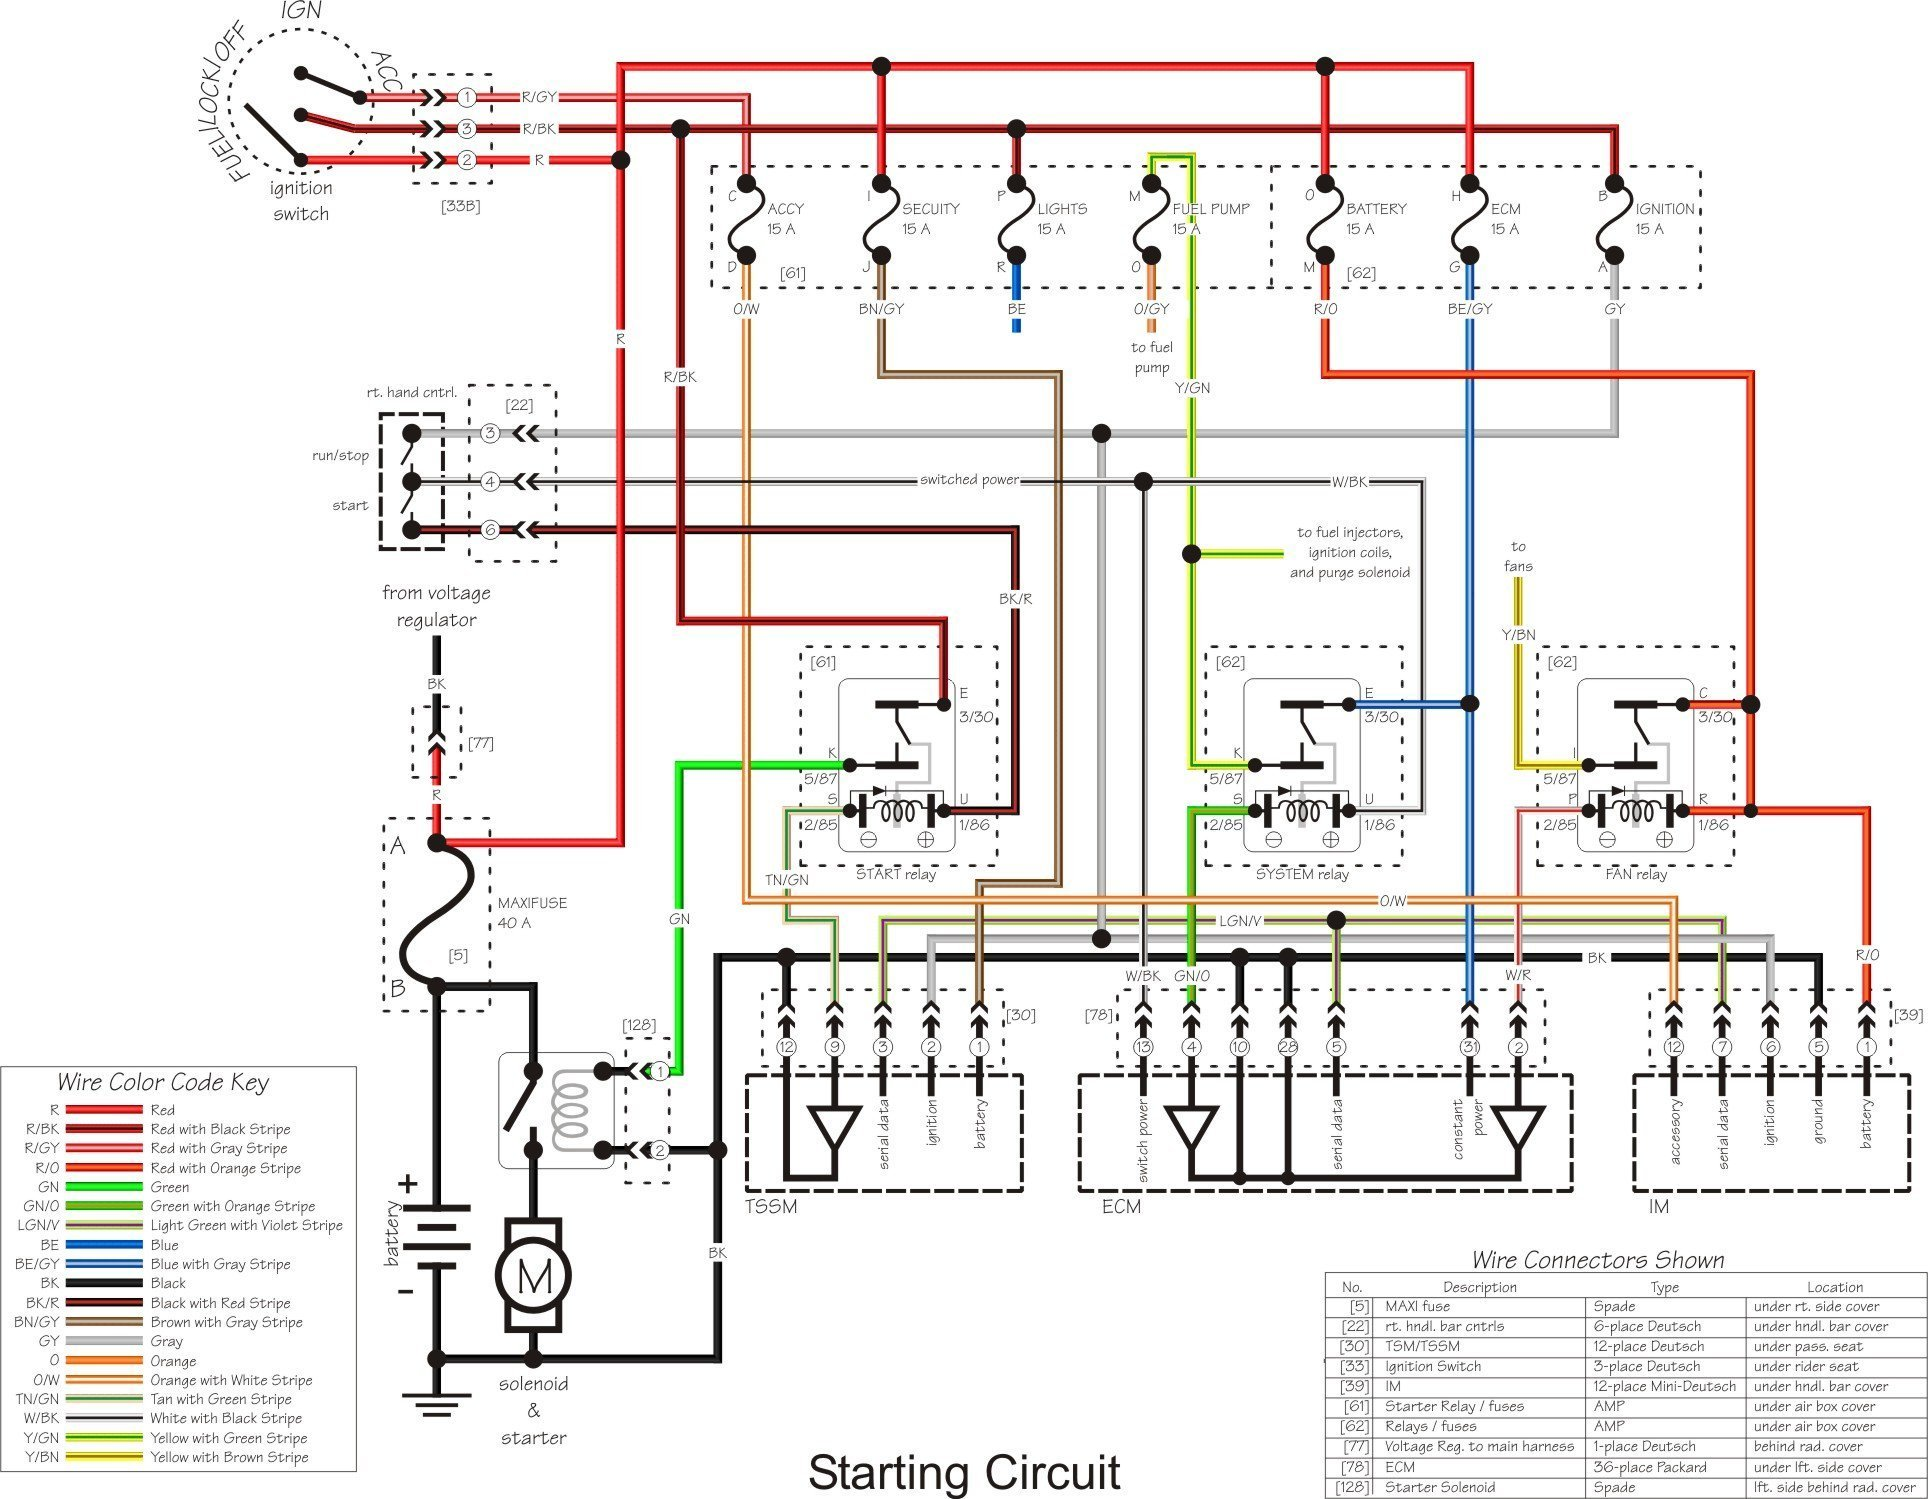 Here's a schematic I drew (no copy right issues) that covers the starting  circuit. It's based on the VRSC hardware up through 2006 but the wire colors  and ...